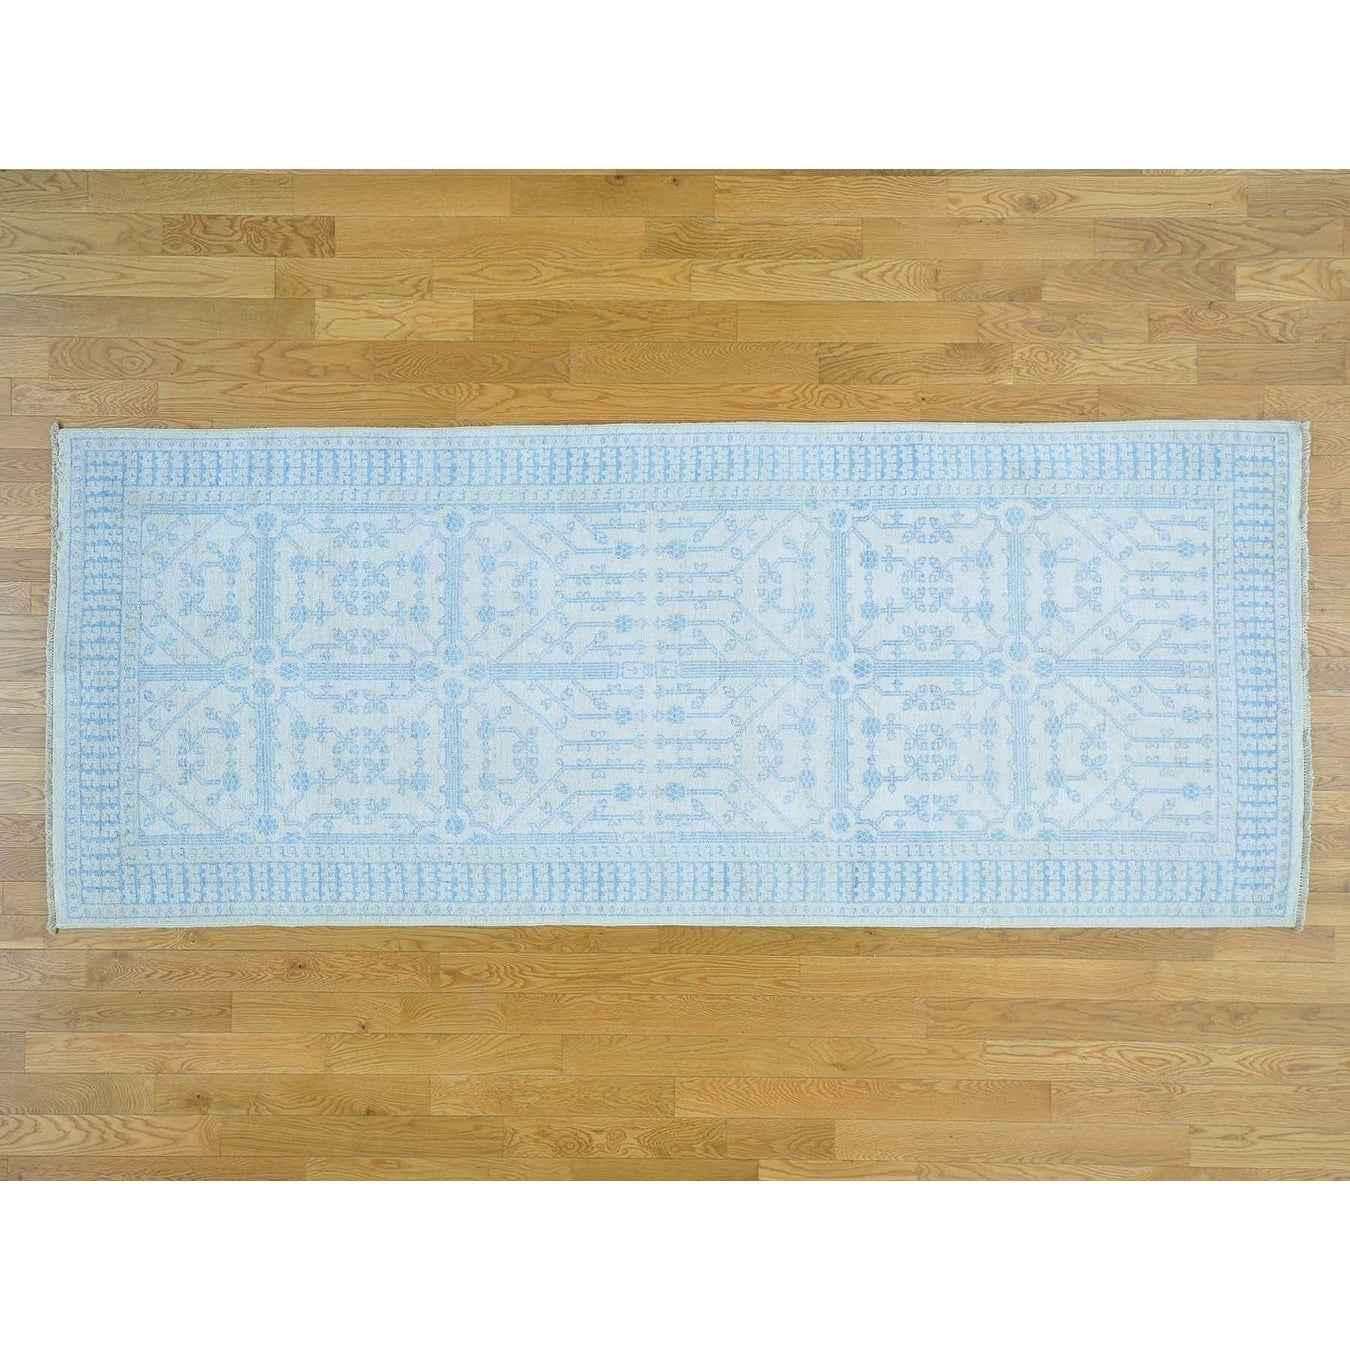 Hand Knotted Ivory Khotan and Samarkand with Wool Oriental Rug - 41 x 102